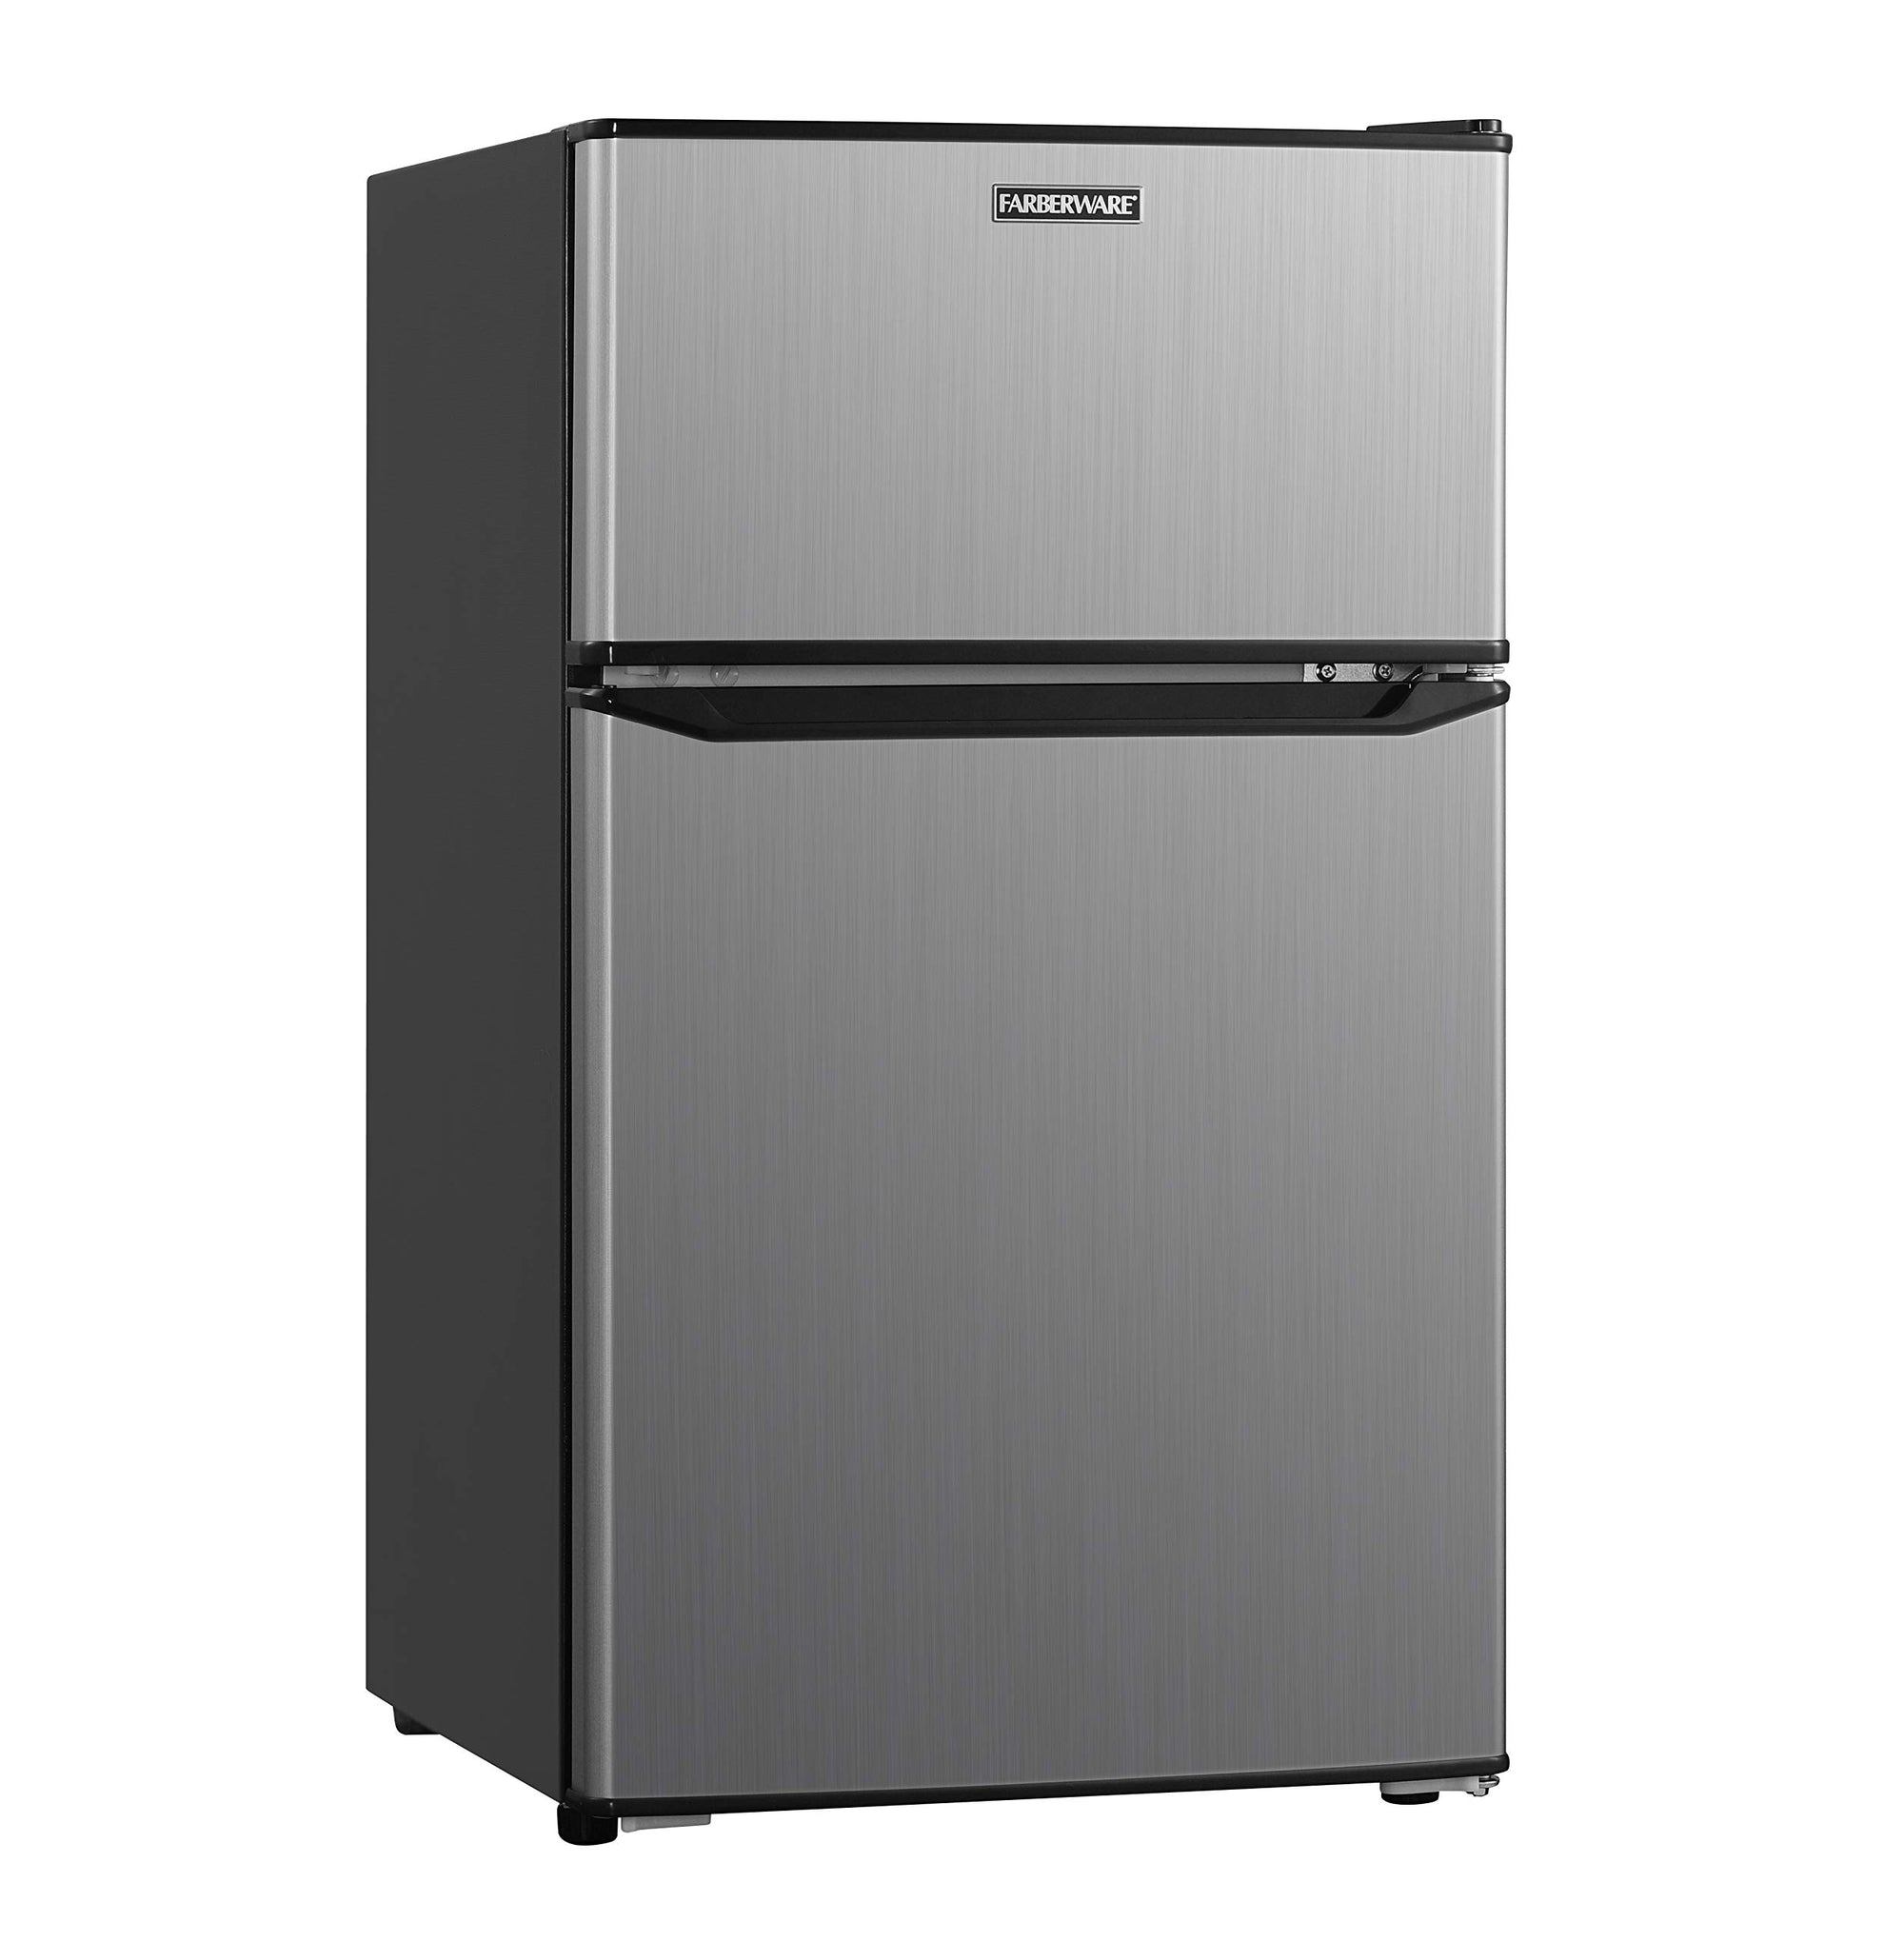 Farberware Classic  FCR31DCVBKB 3.1 Cu. Ft. Double Door Compact Refrigerator with Freezer Compartment, Energy Star and LED Lighting - Perfect for Office, Dorm or an Apartment, VCM Stainless Look